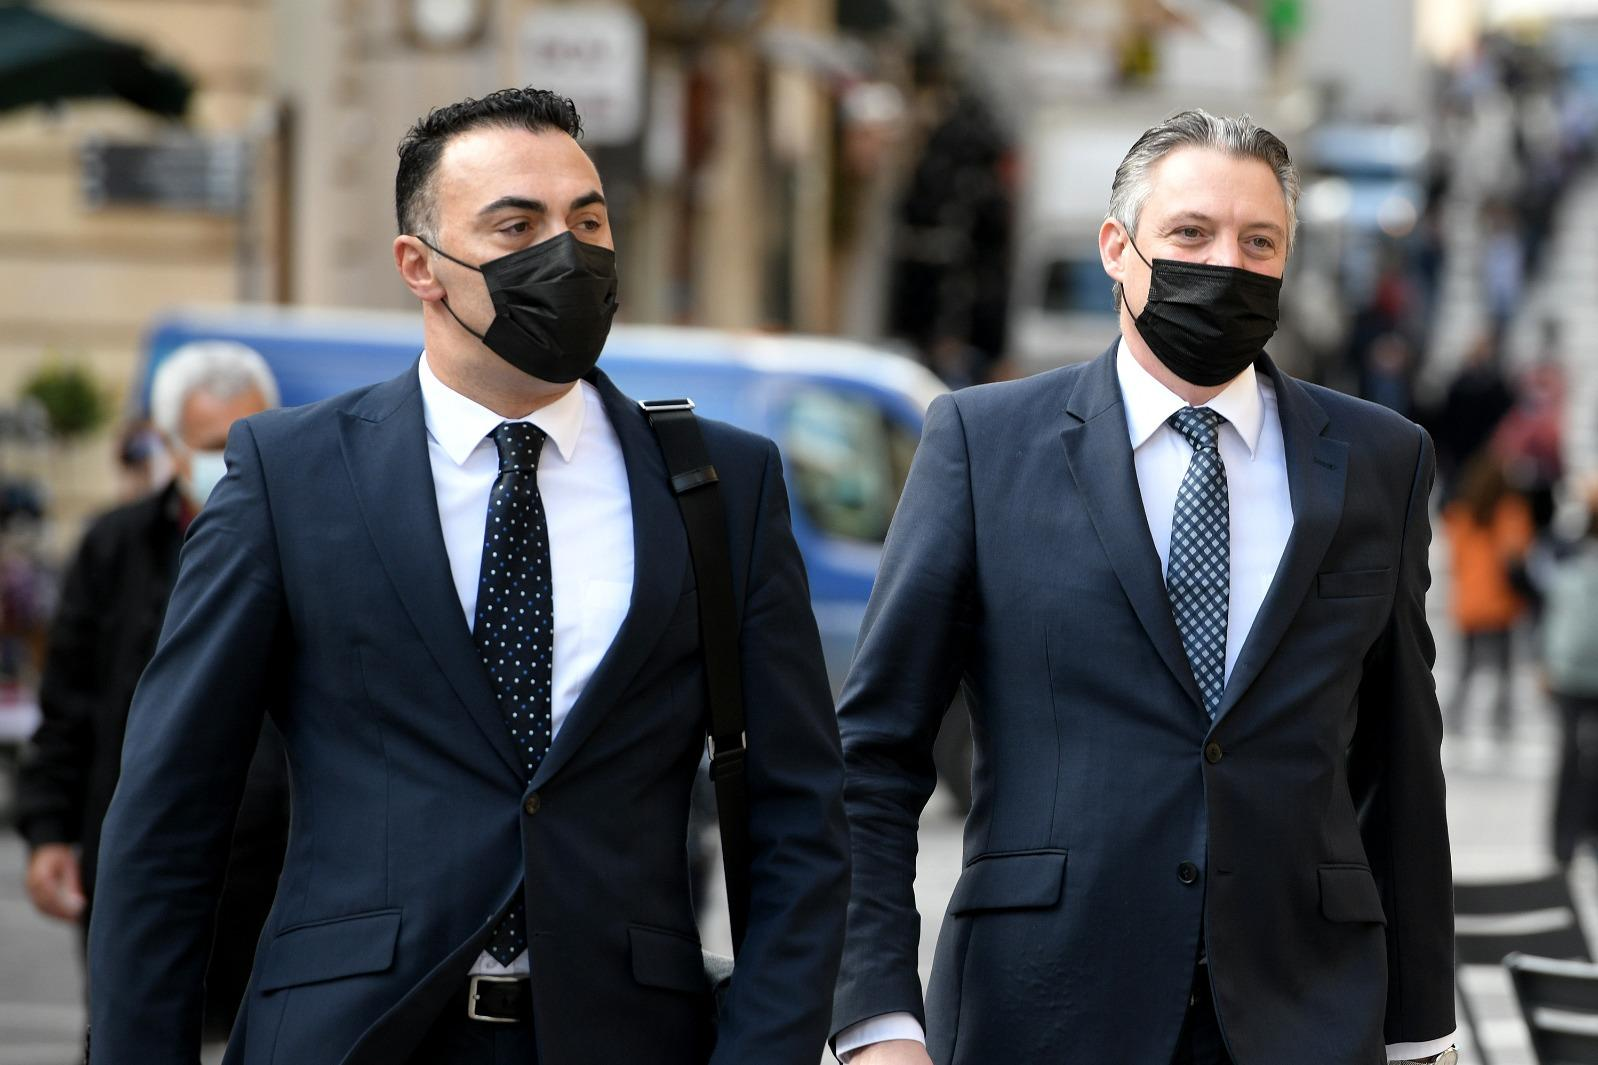 Konrad Mizzi, right, arrives at the inquiry on Friday. Photo: Matthew Mirabelli